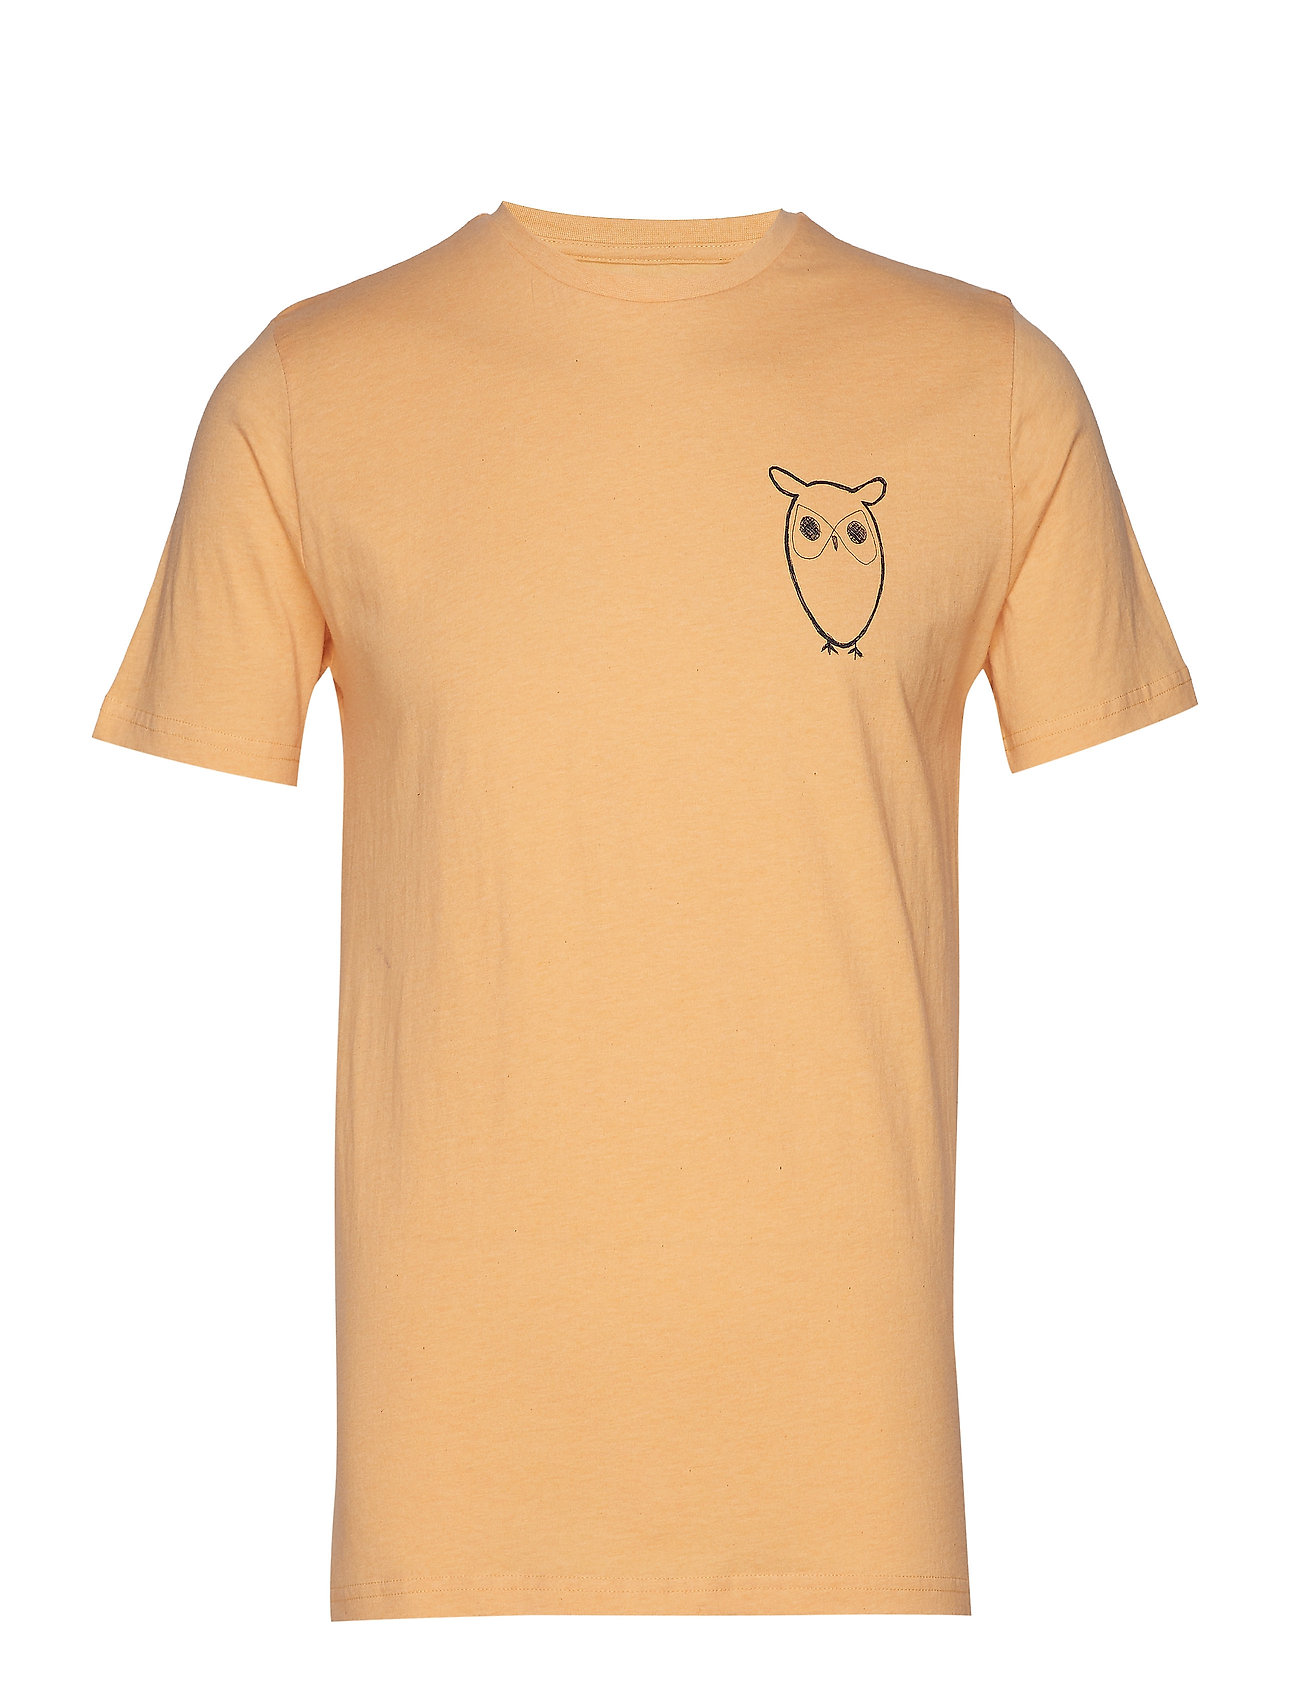 Image of T-Shirt With Owl Chest Logo - Gots T-shirt Knowledge Cotton Apparel (3169766243)